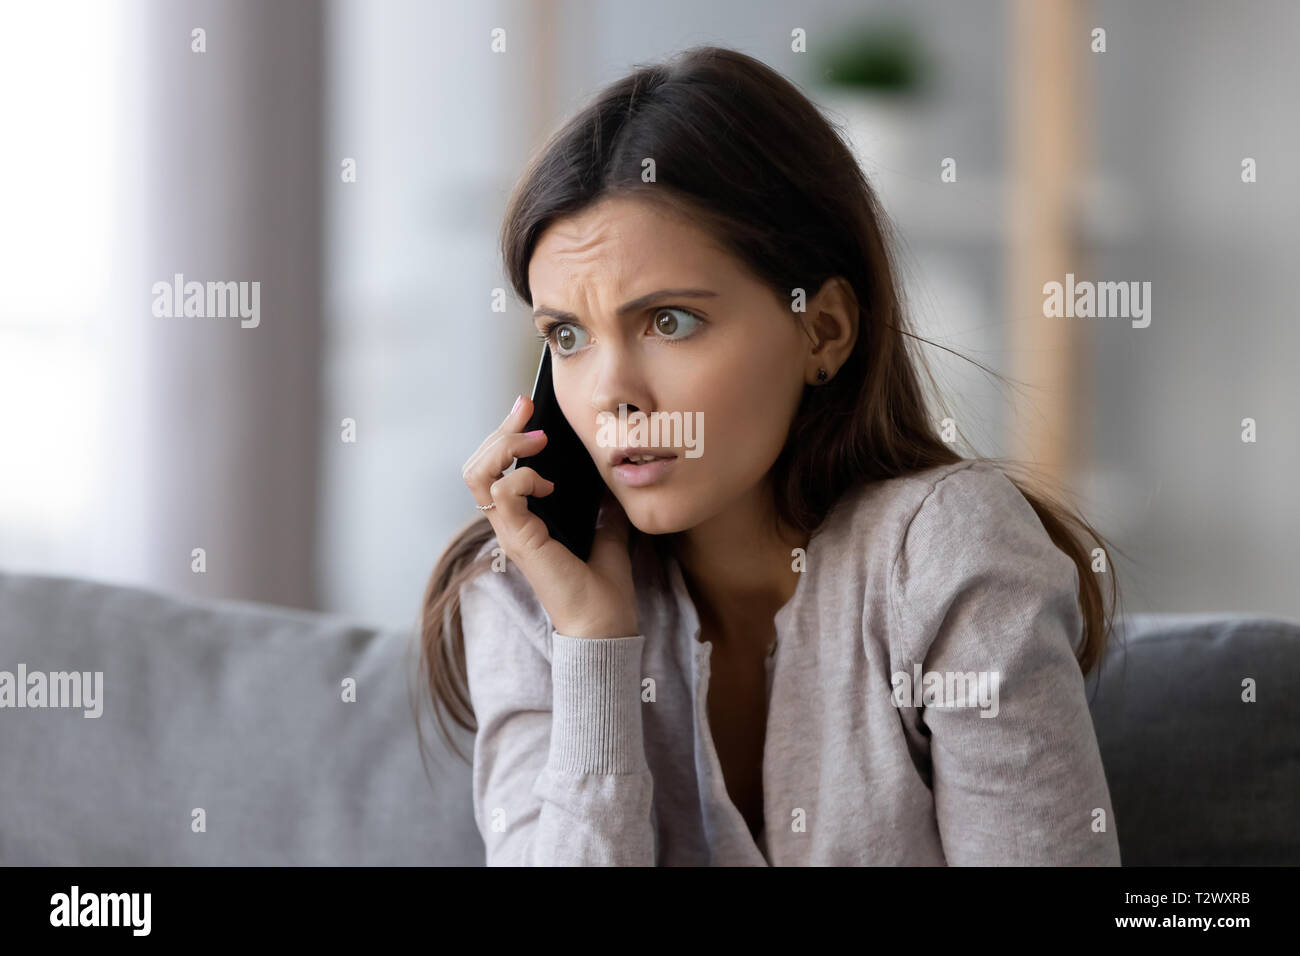 Shocked or scared young woman talking on mobile phone Stock Photo ...